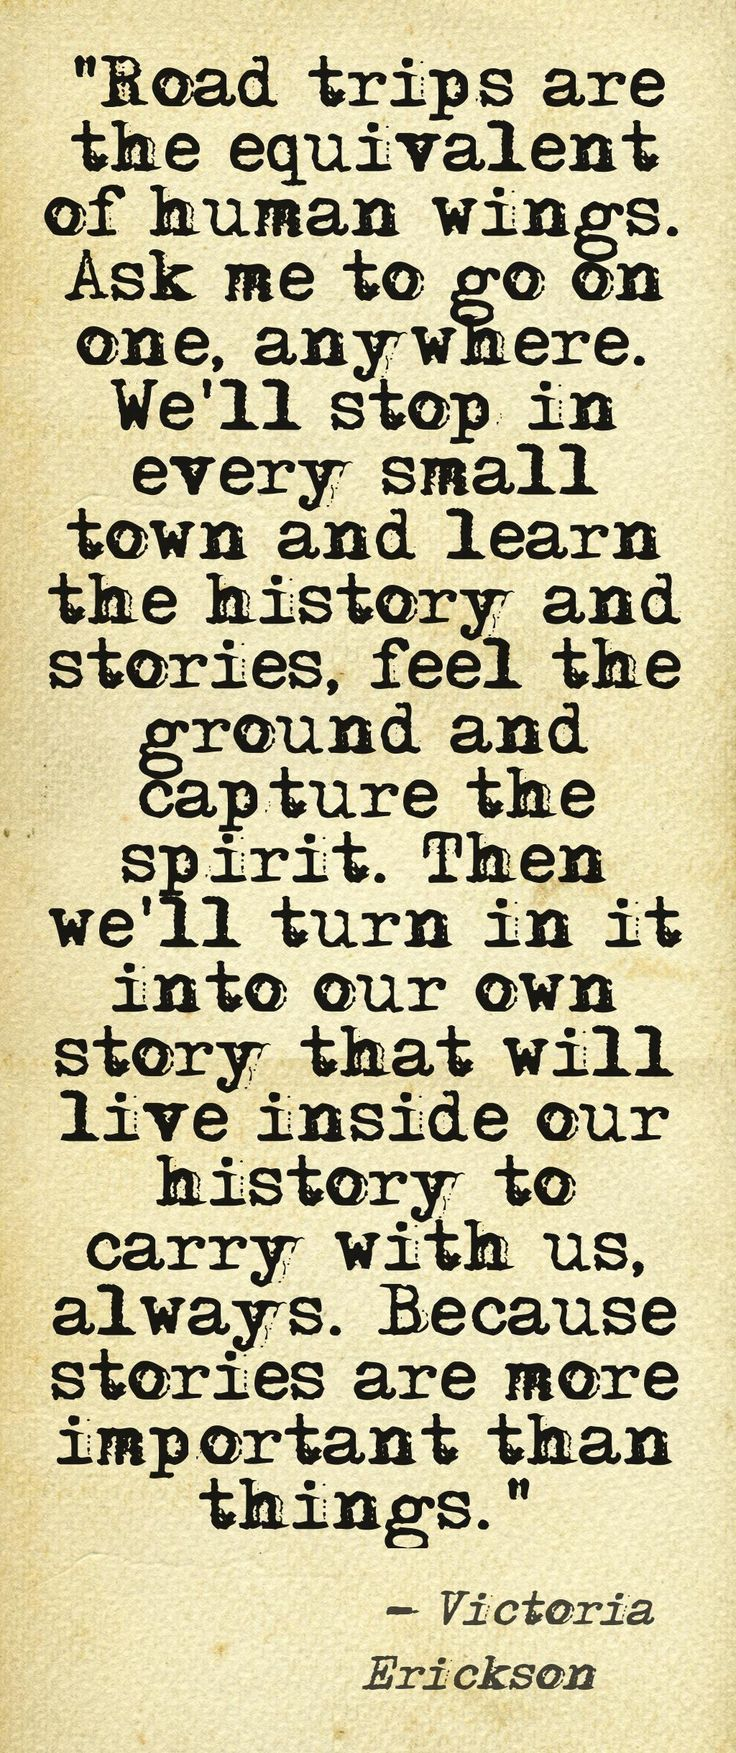 Small Town Life Quotes Travel Inspiration Quotes   On A Road Trip With Kids